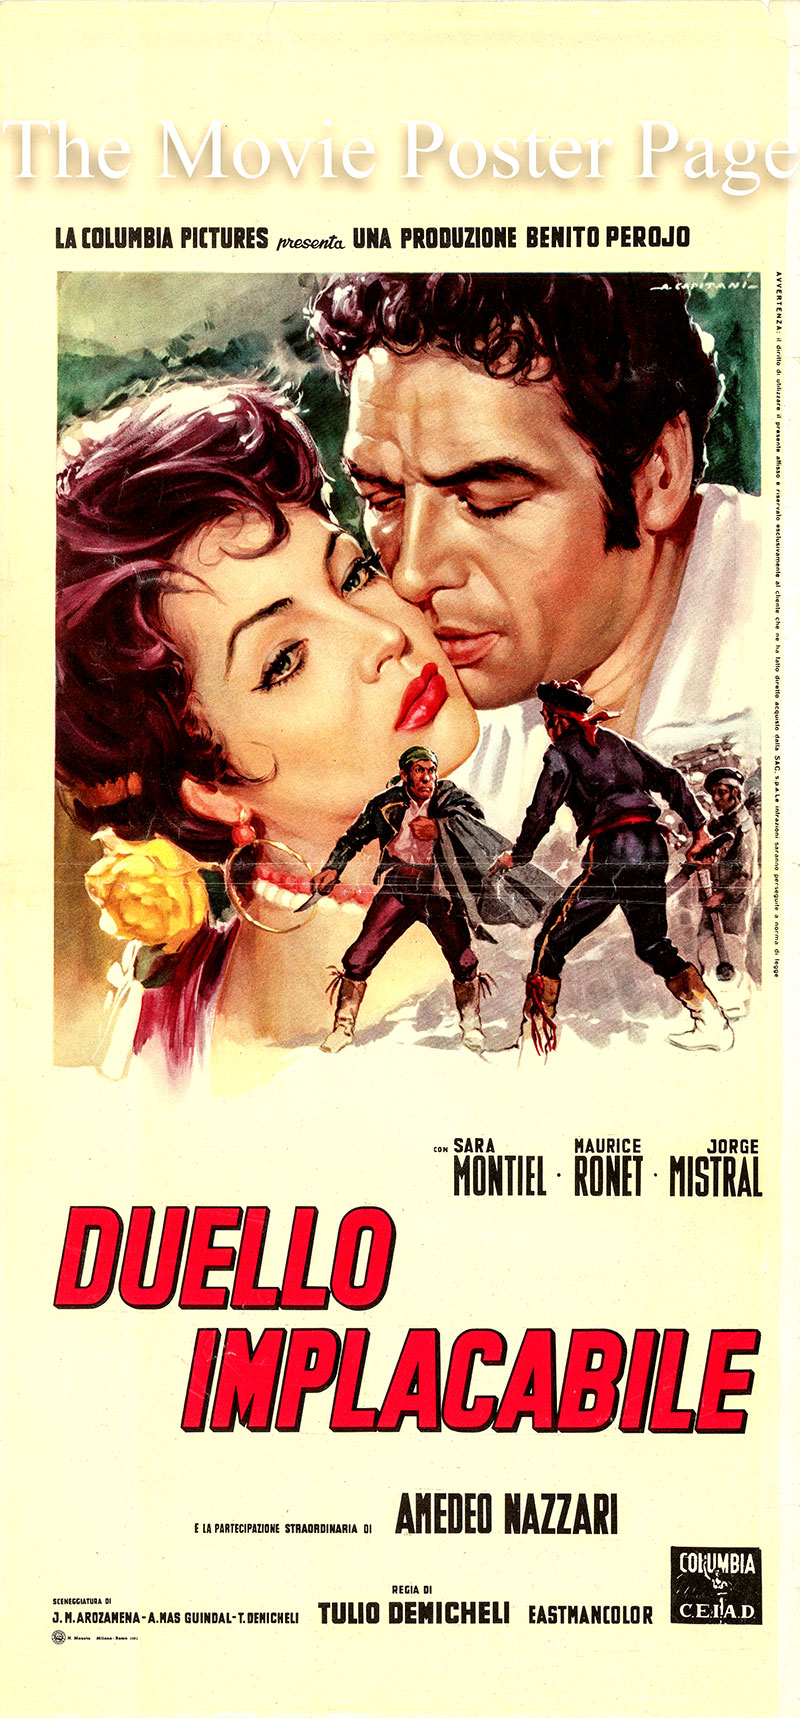 Pictured is an Italian locandina poster for the 1959 Tulio Demicheli film A Girl against Napoleon starring Sara Monteil as Carmen.